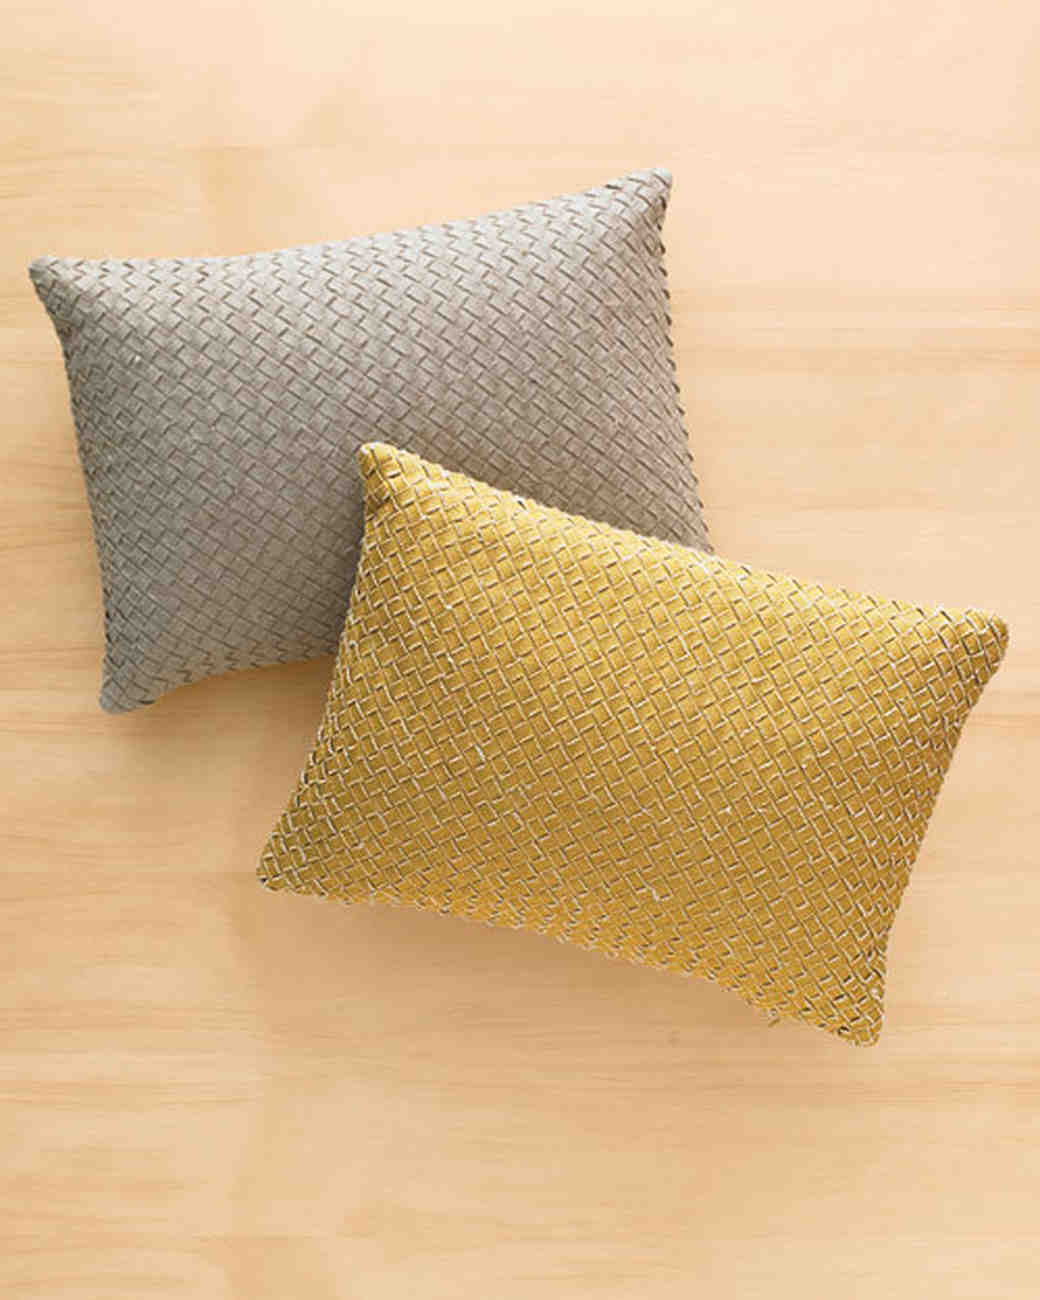 mld106509_spr11_pillow01.jpg